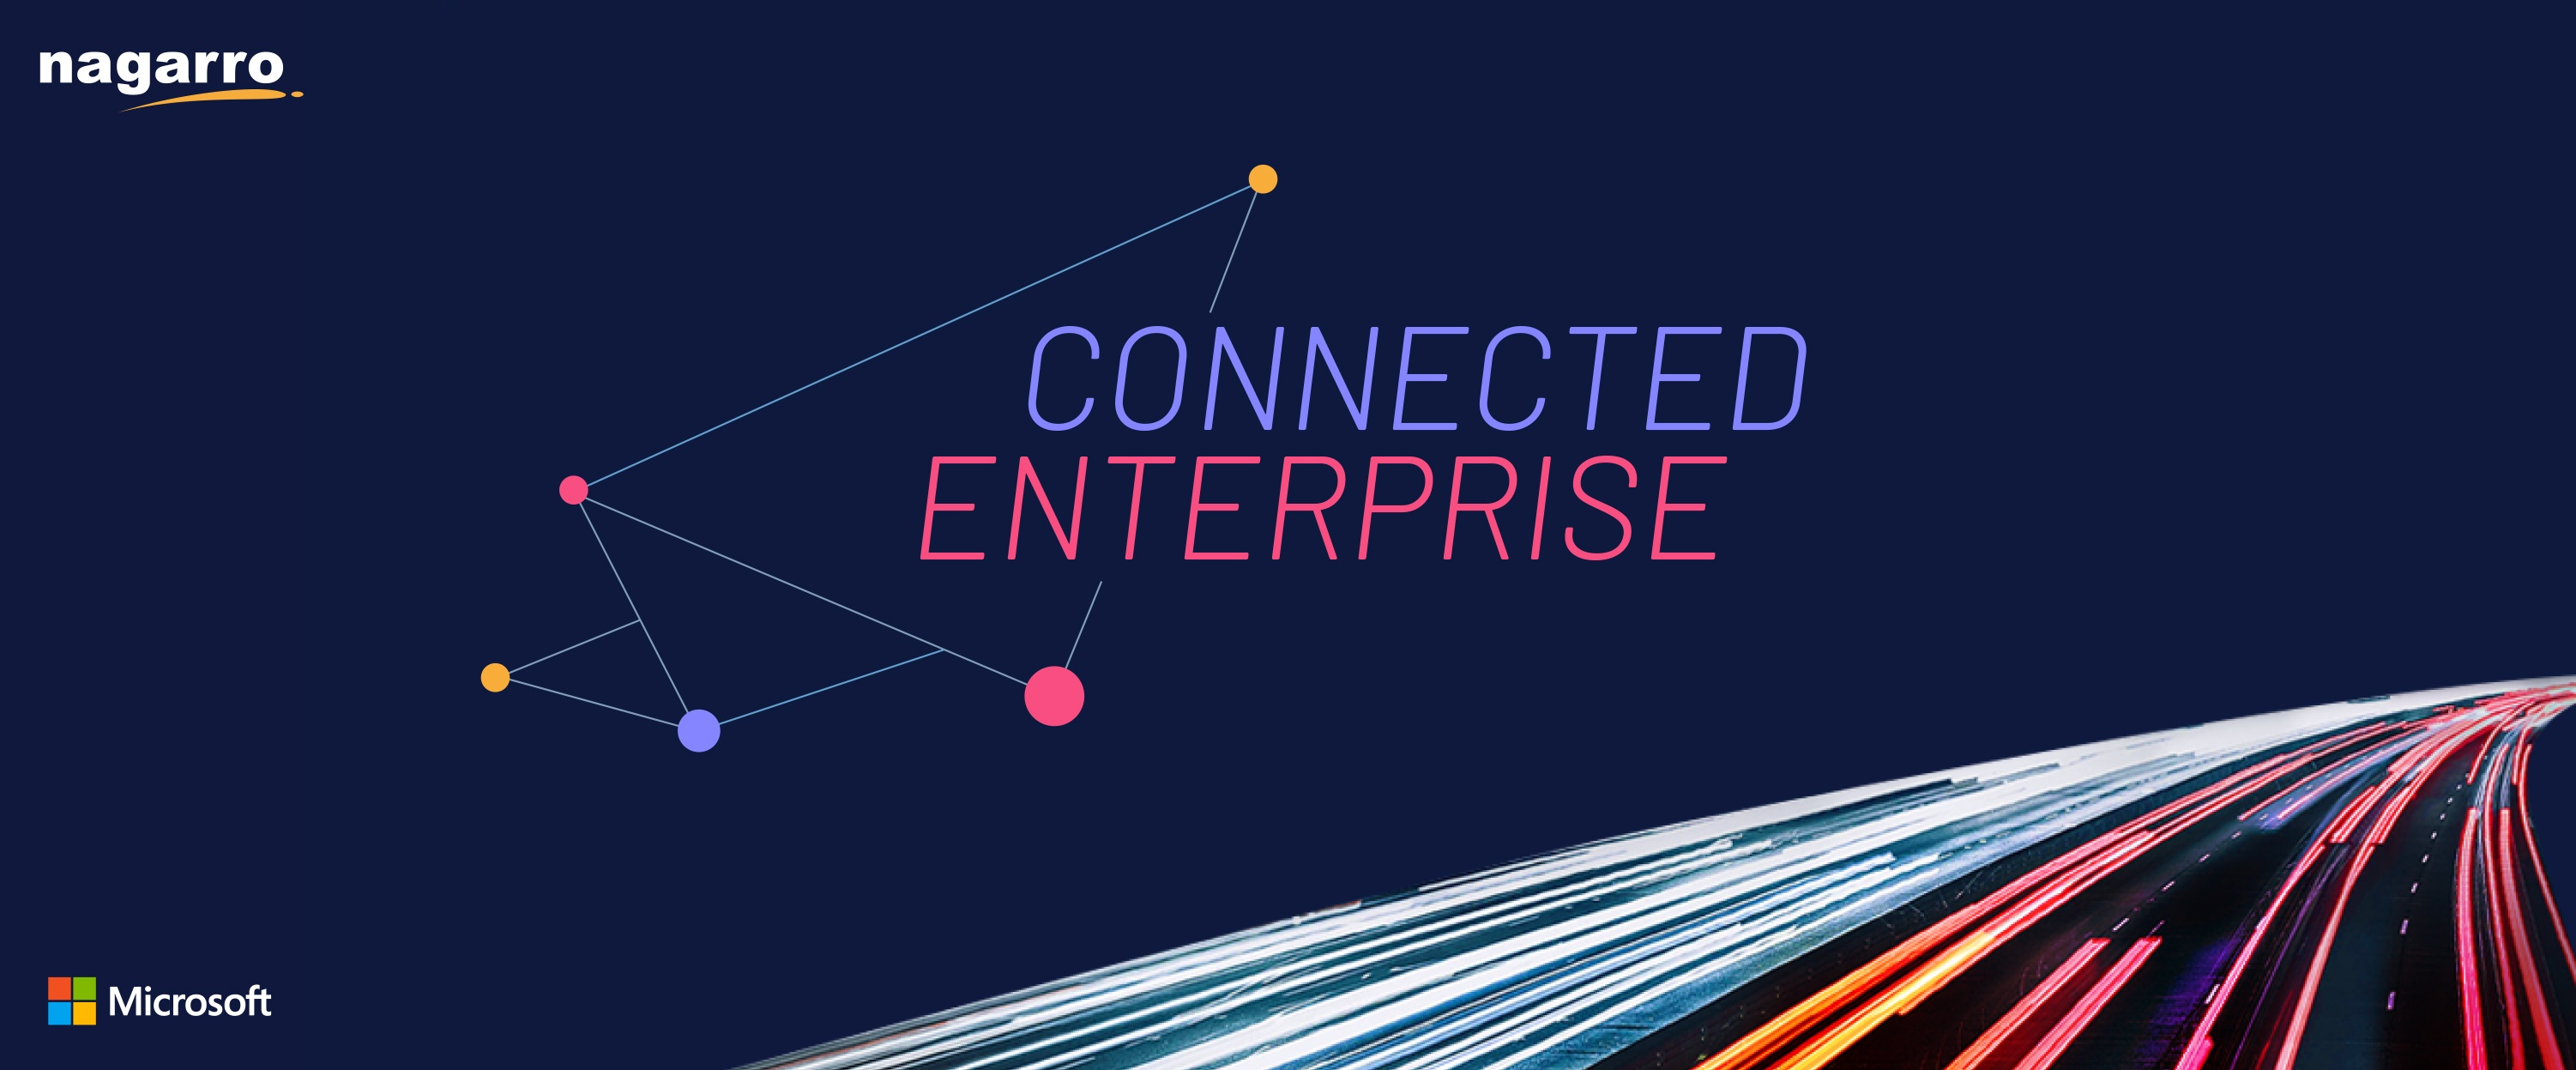 Connected Enterprise banner